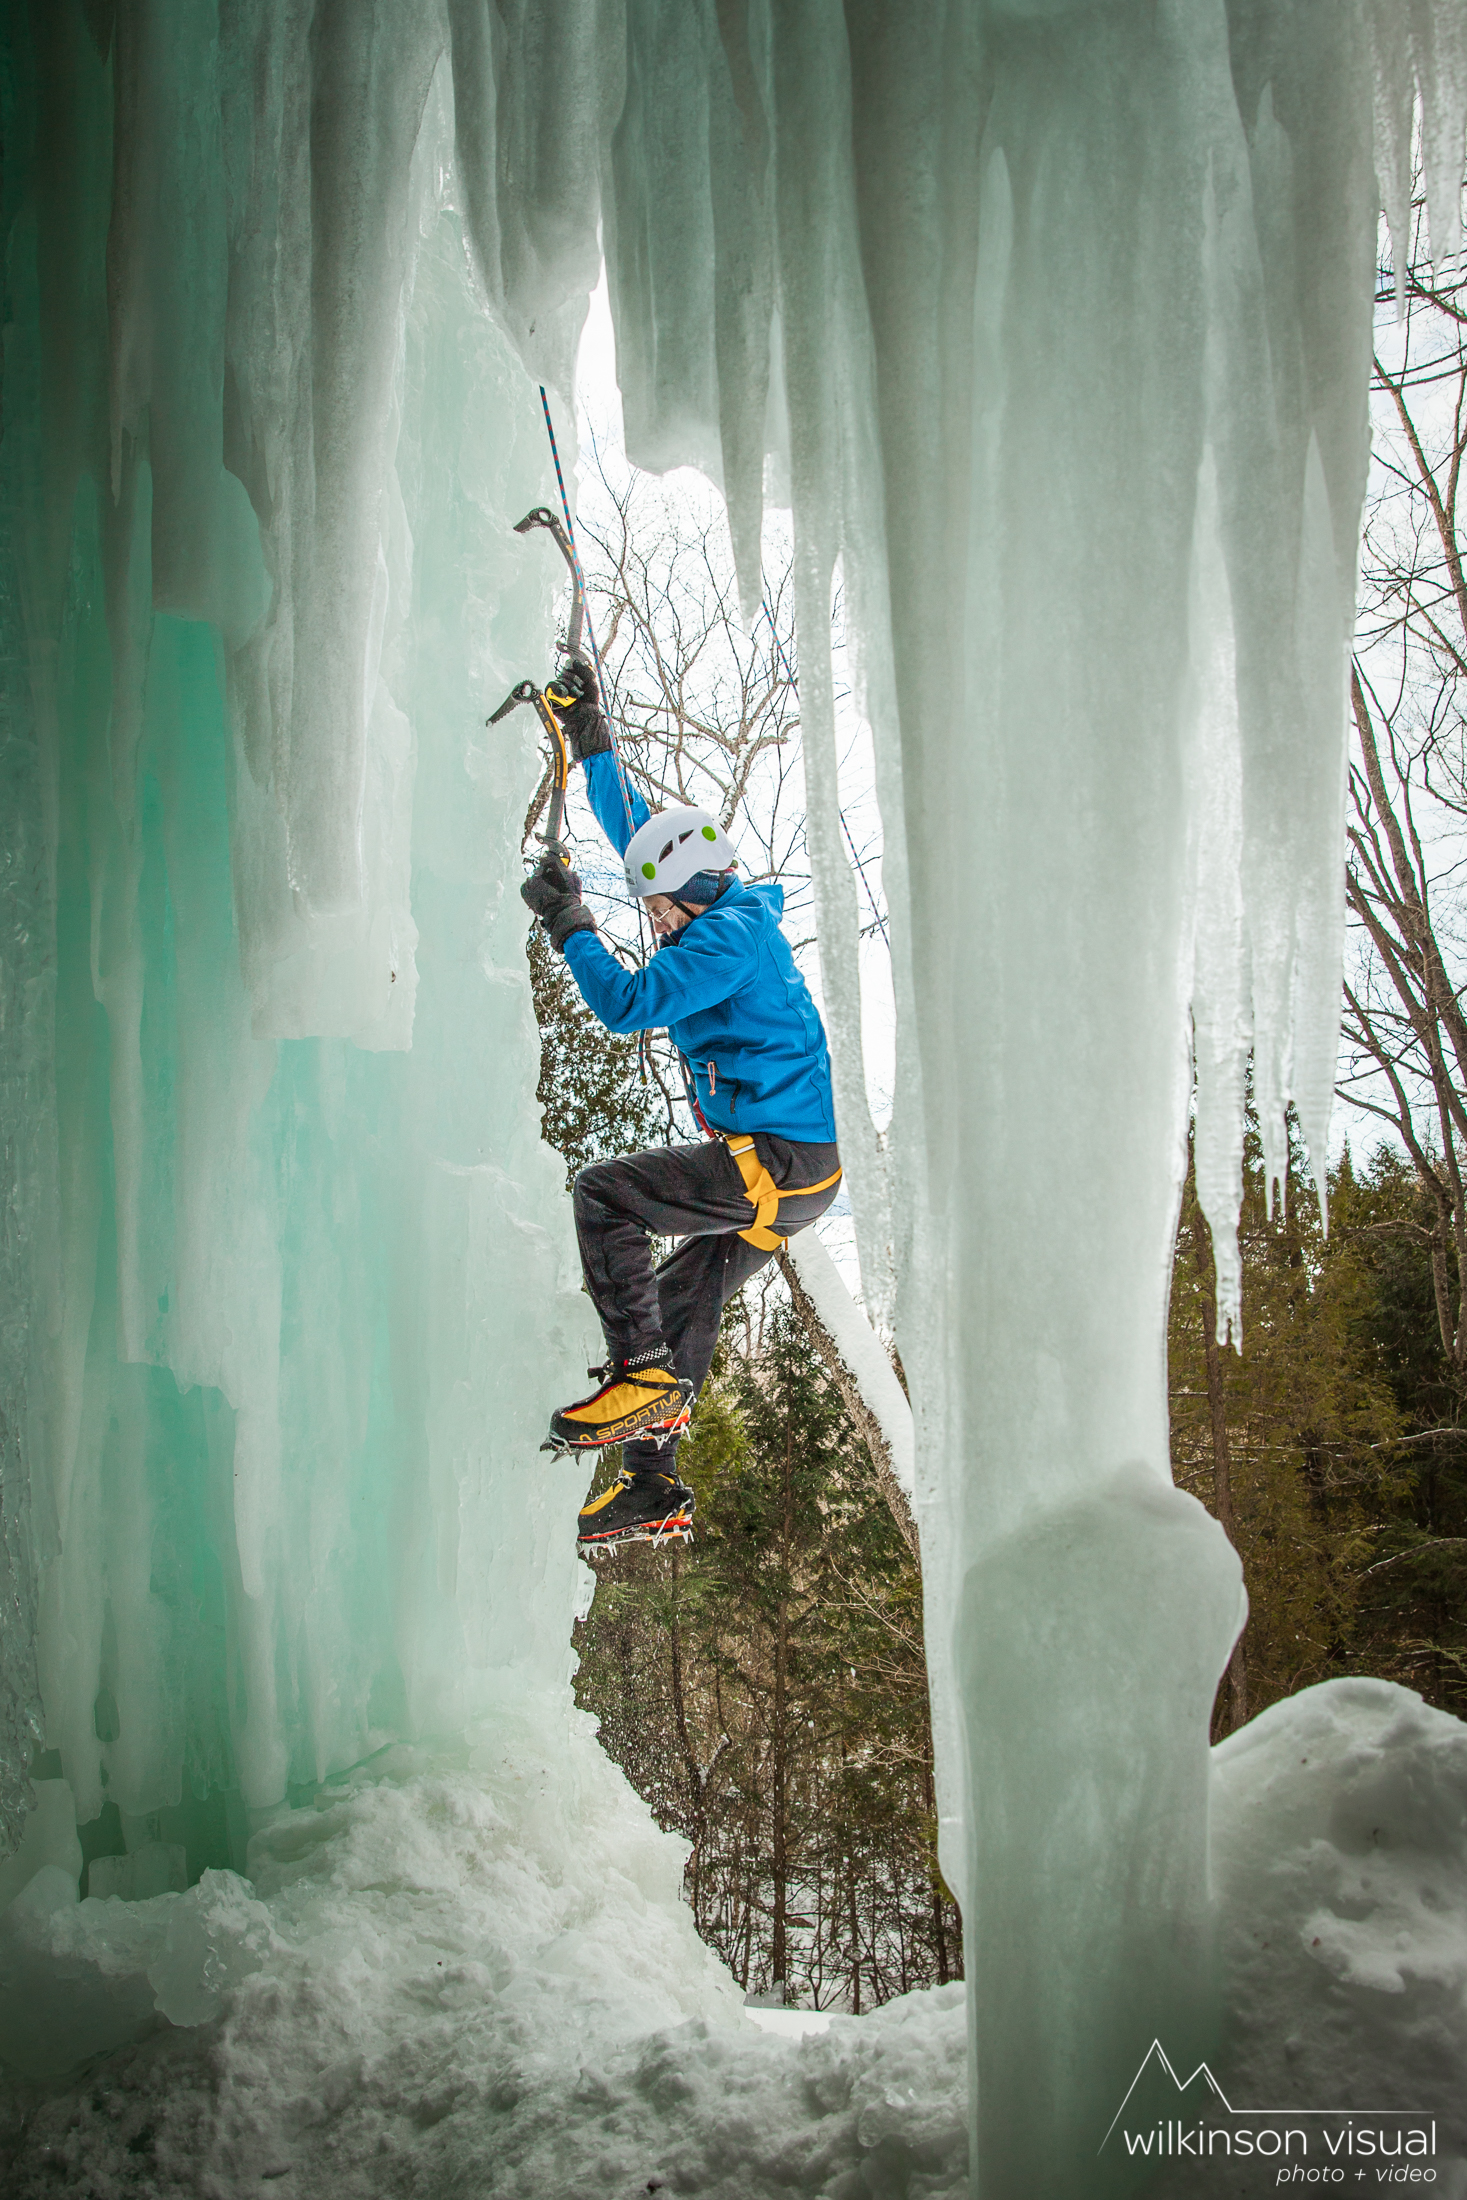 Mark Cantrell climbs in the Curtains area of Pictured Rocks National Lakeshore, Michigan. Grivel ice tools shown.